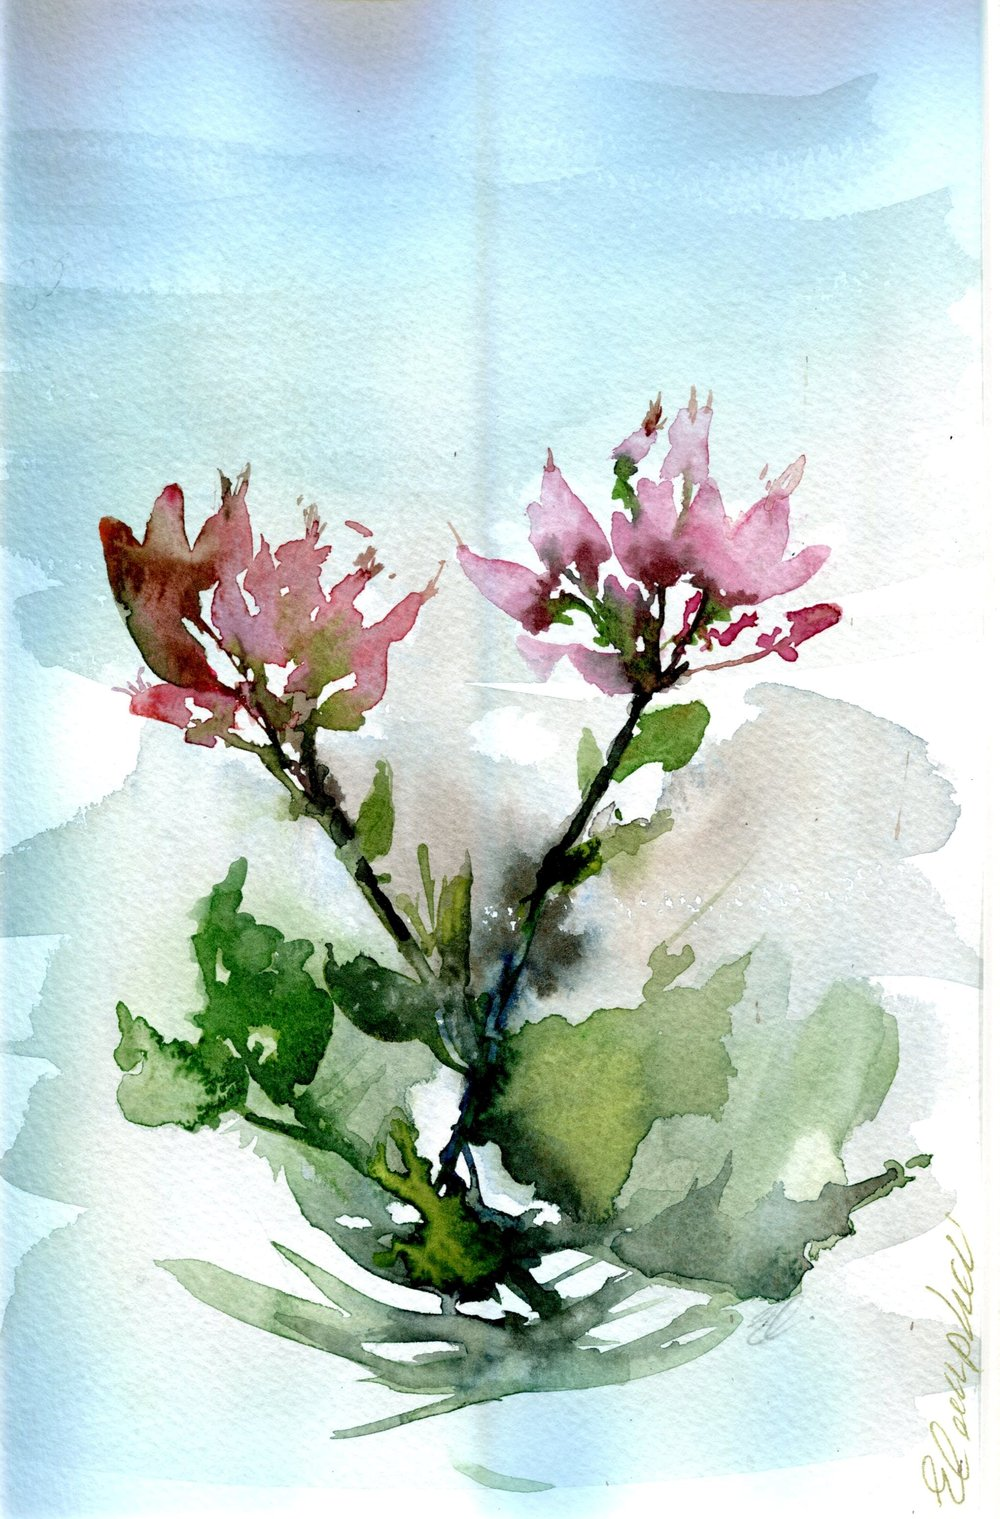 6A LIZ CAMPBELL, FLORAL STUDY, WATERCOLOUR ON PAPER